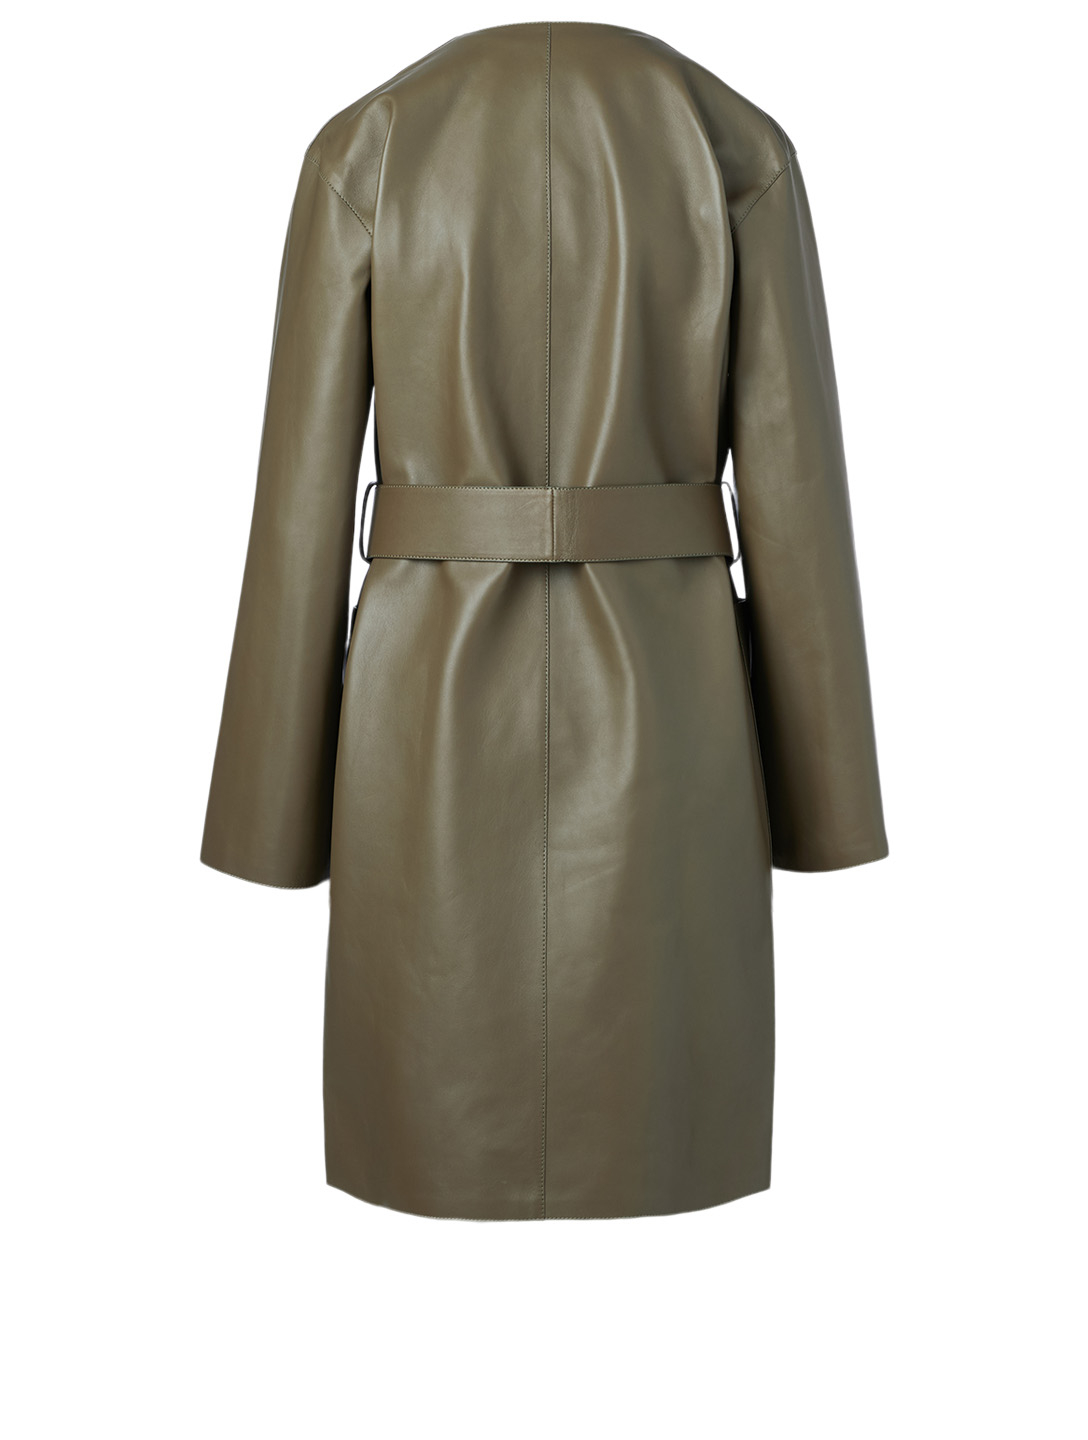 LOEWE Leather Coat With Belt Women's Green